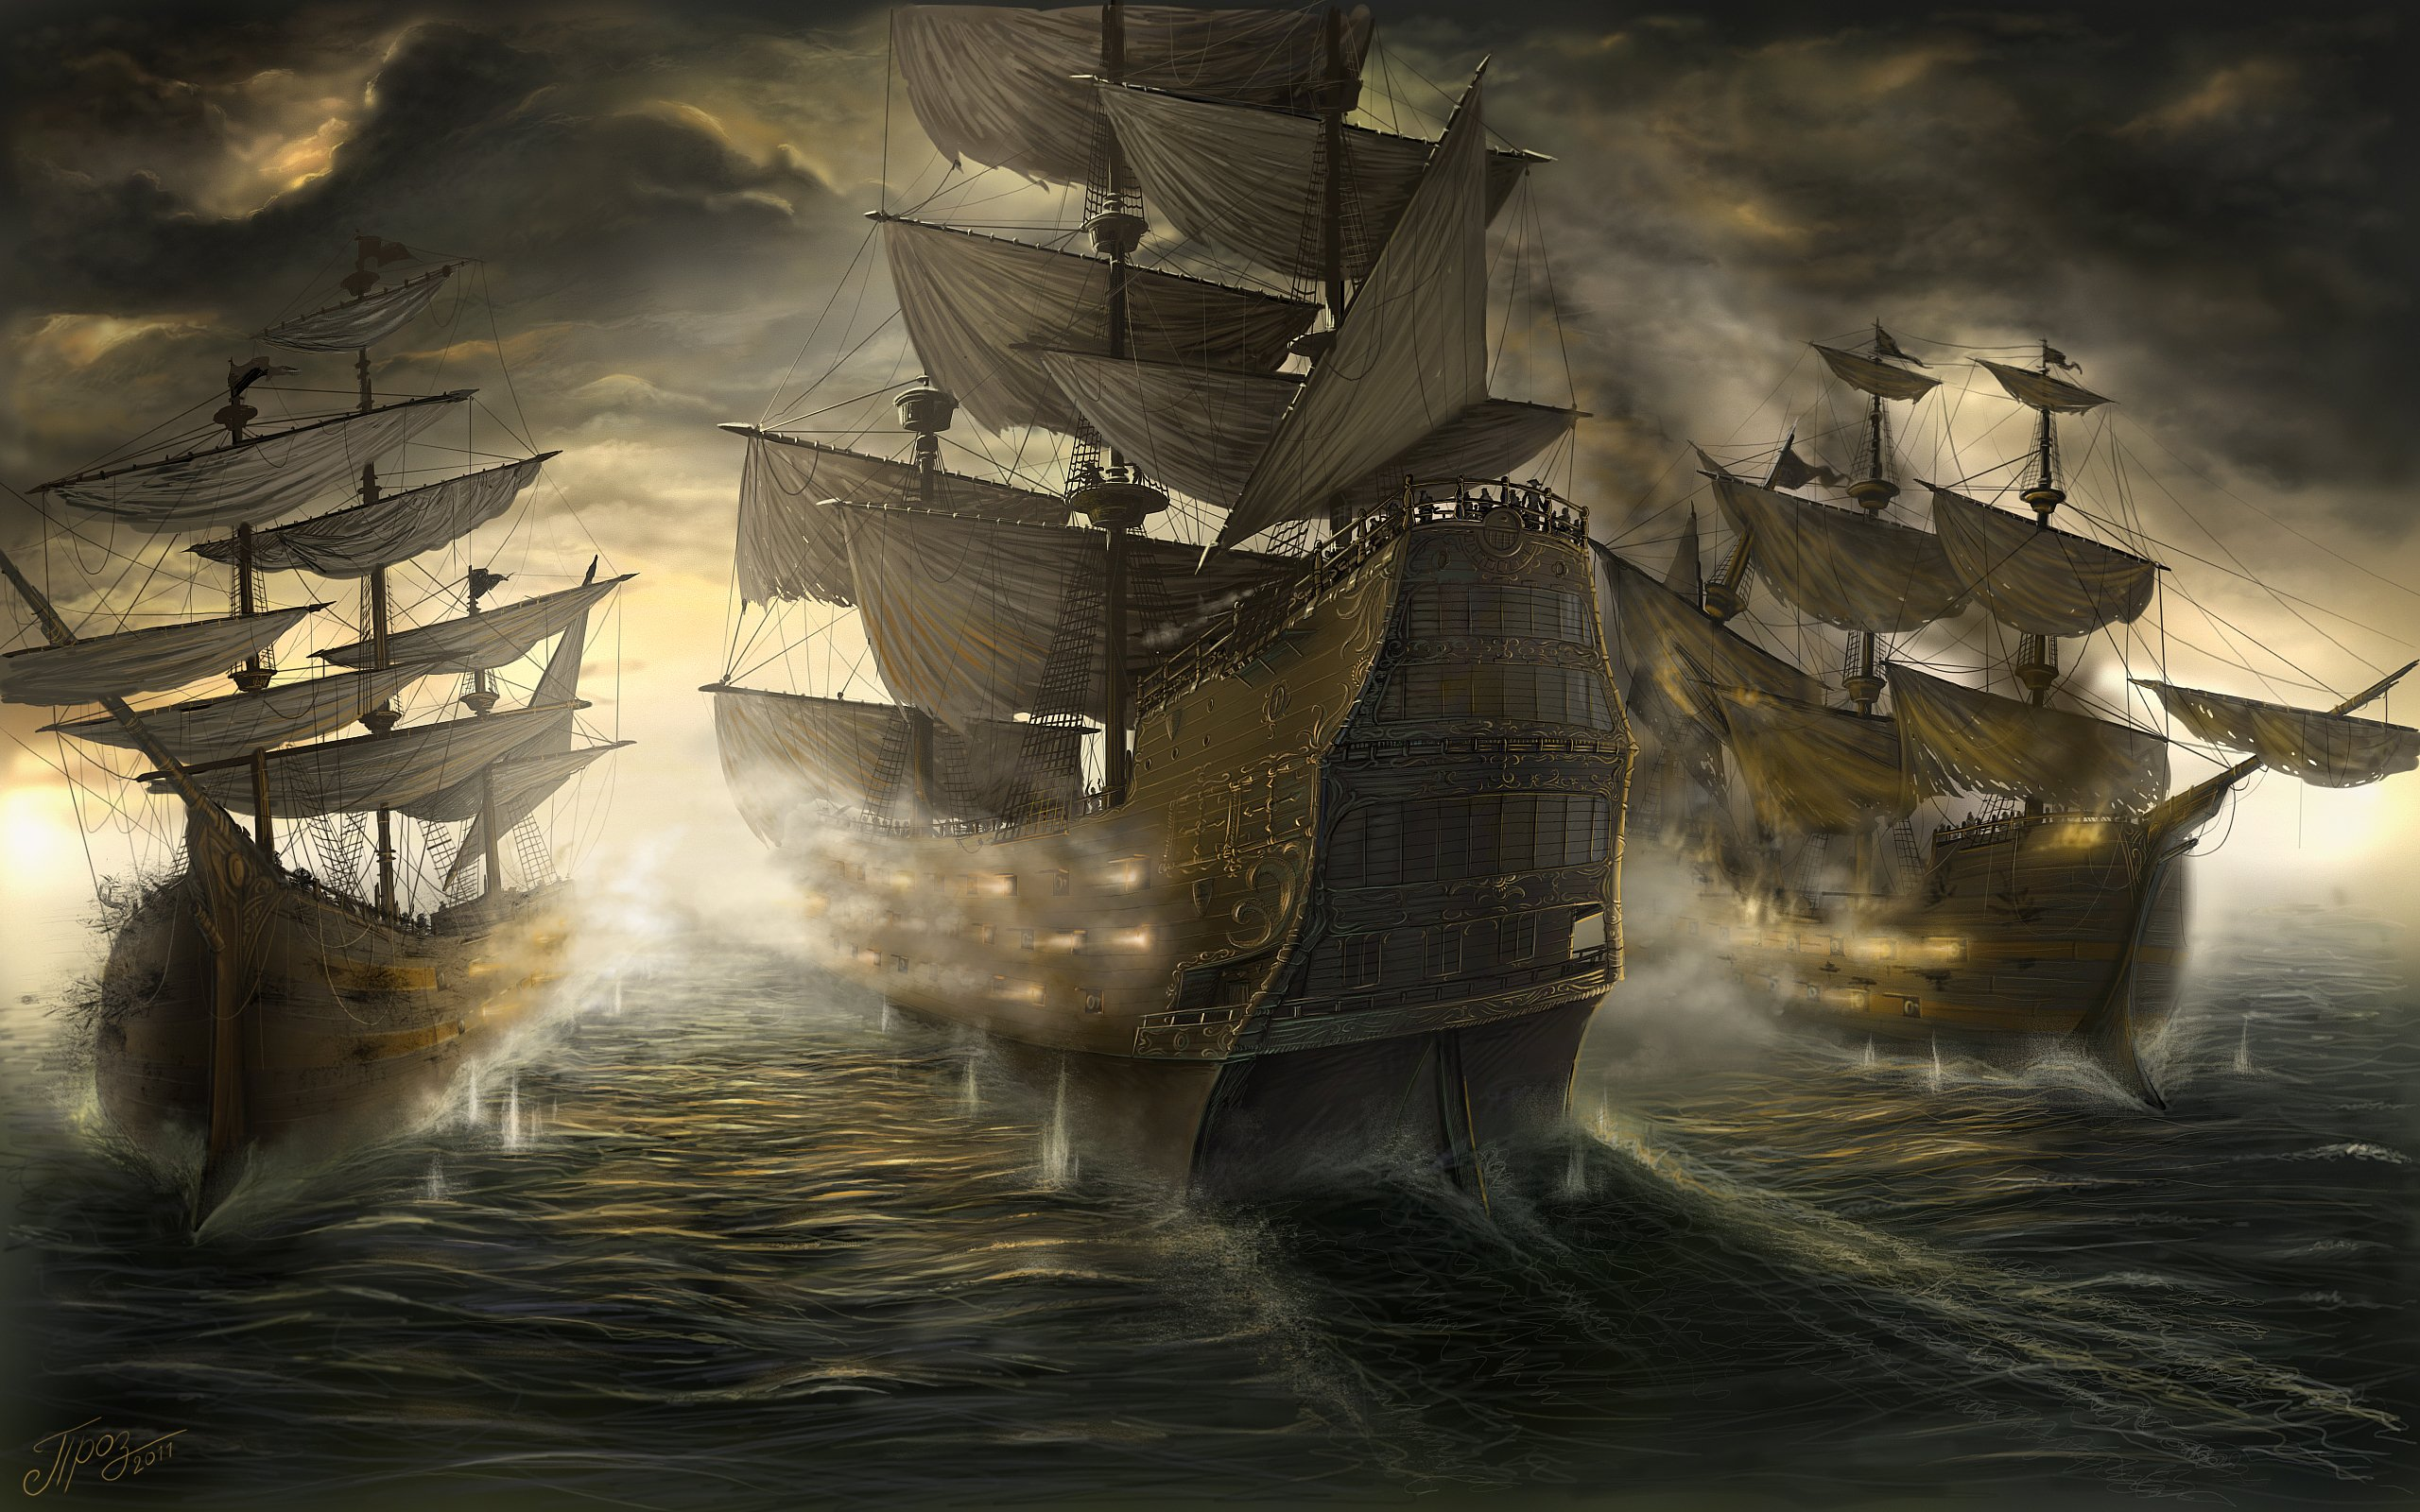 Battle Sailing Ship Fantasy boat war wallpaper | 2560x1600 ...